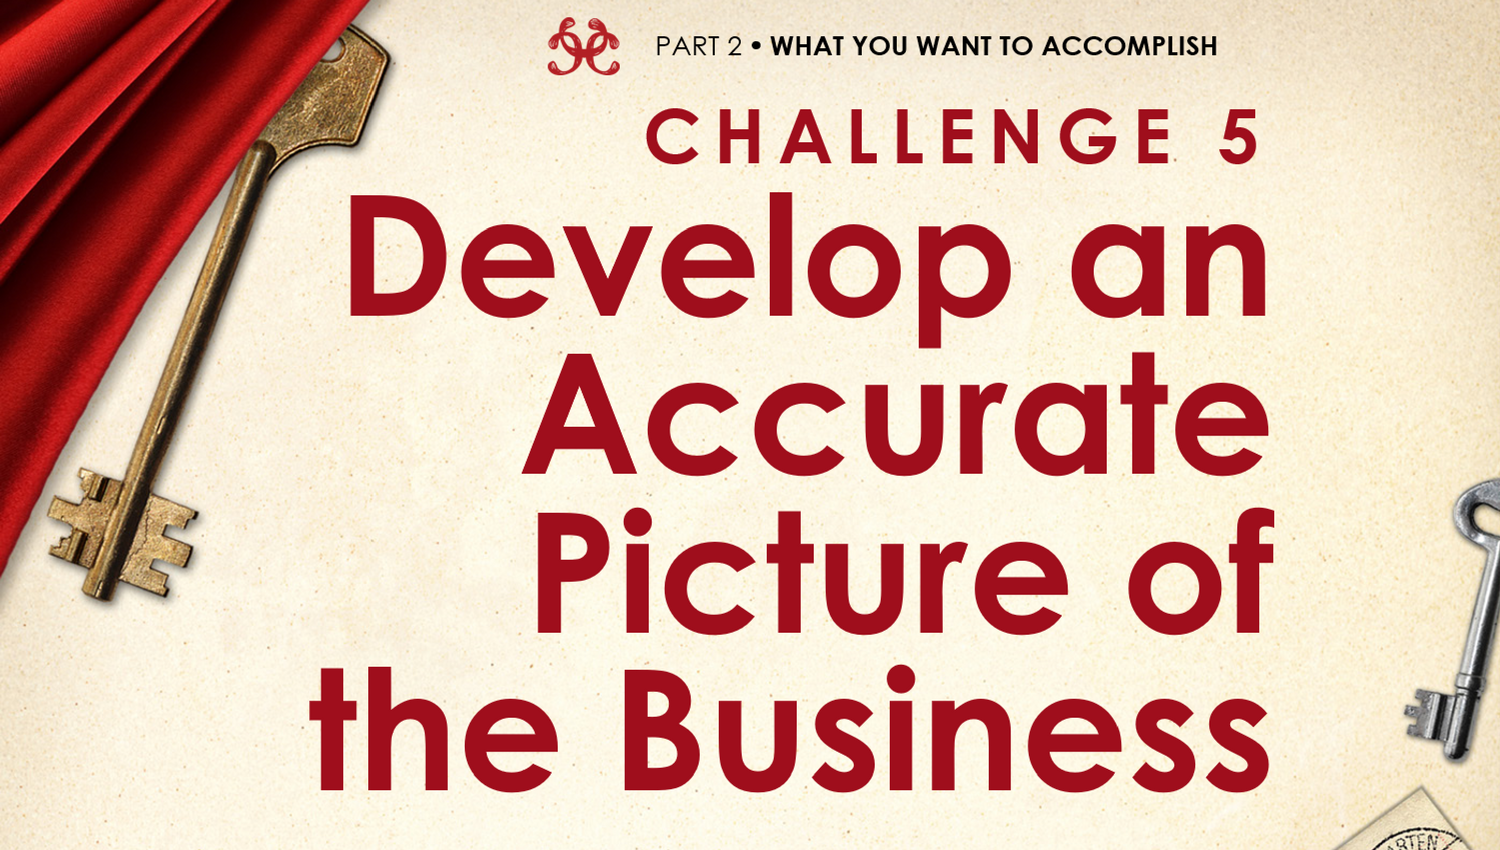 Courageous-Comm-Quest-Develop-Accurate-Picture-of-Business-Challenge-5.png